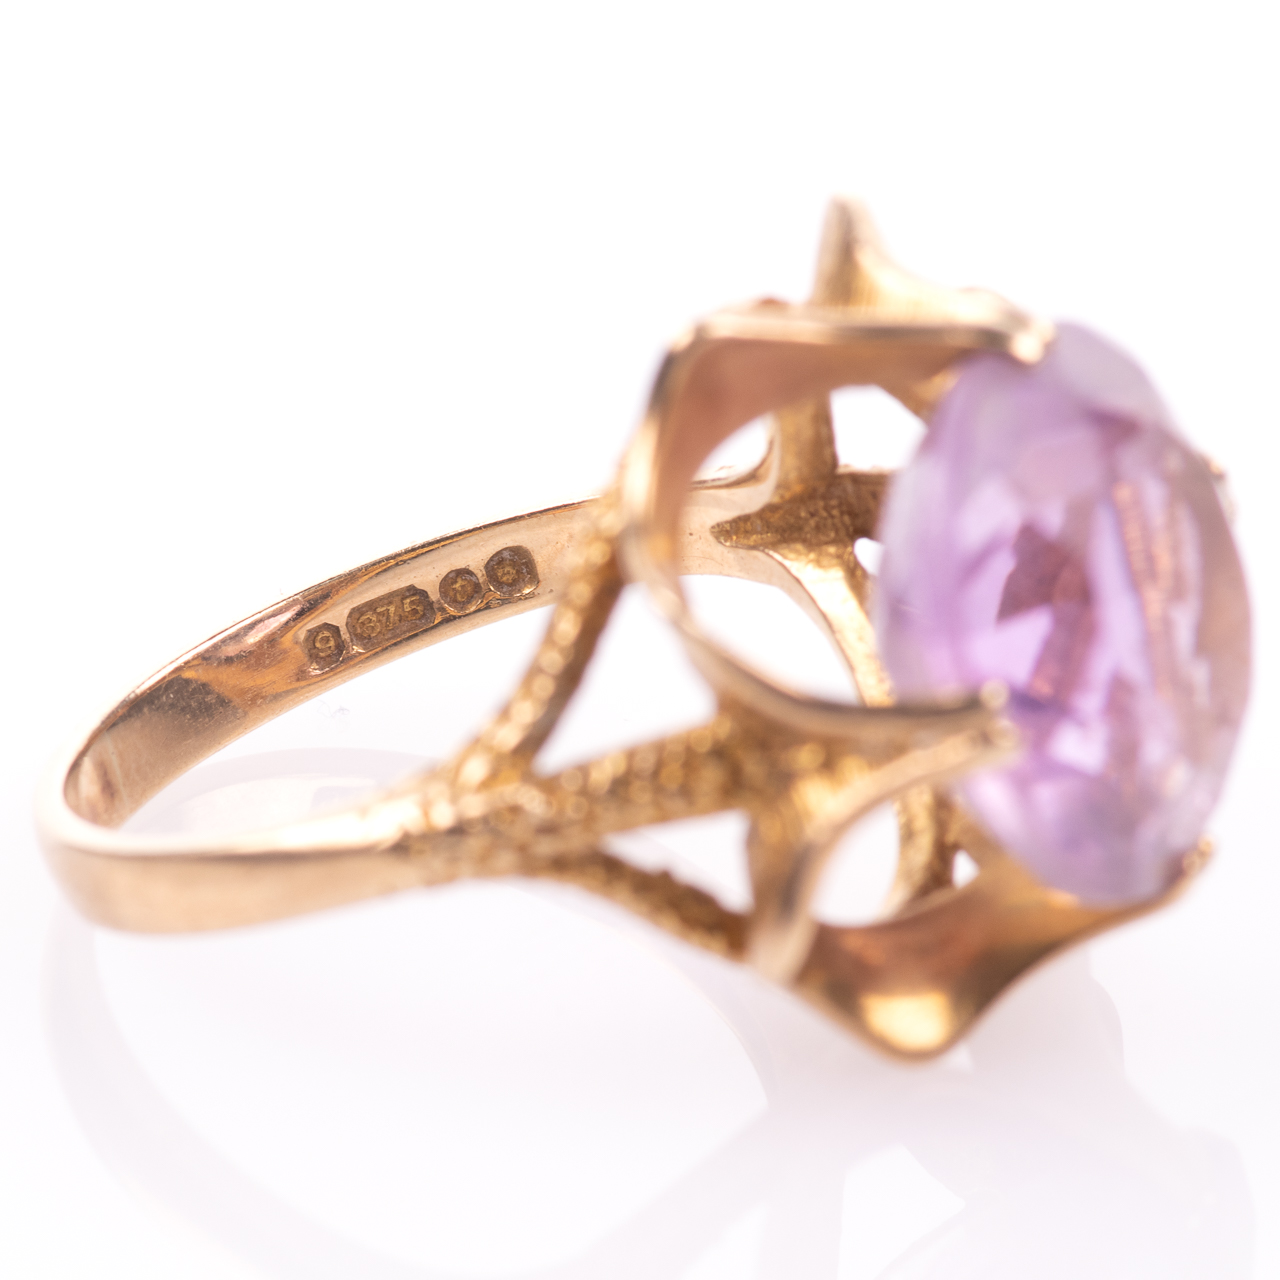 9ct Gold 6.45ct Amethyst Ring London 1974 - Image 8 of 8